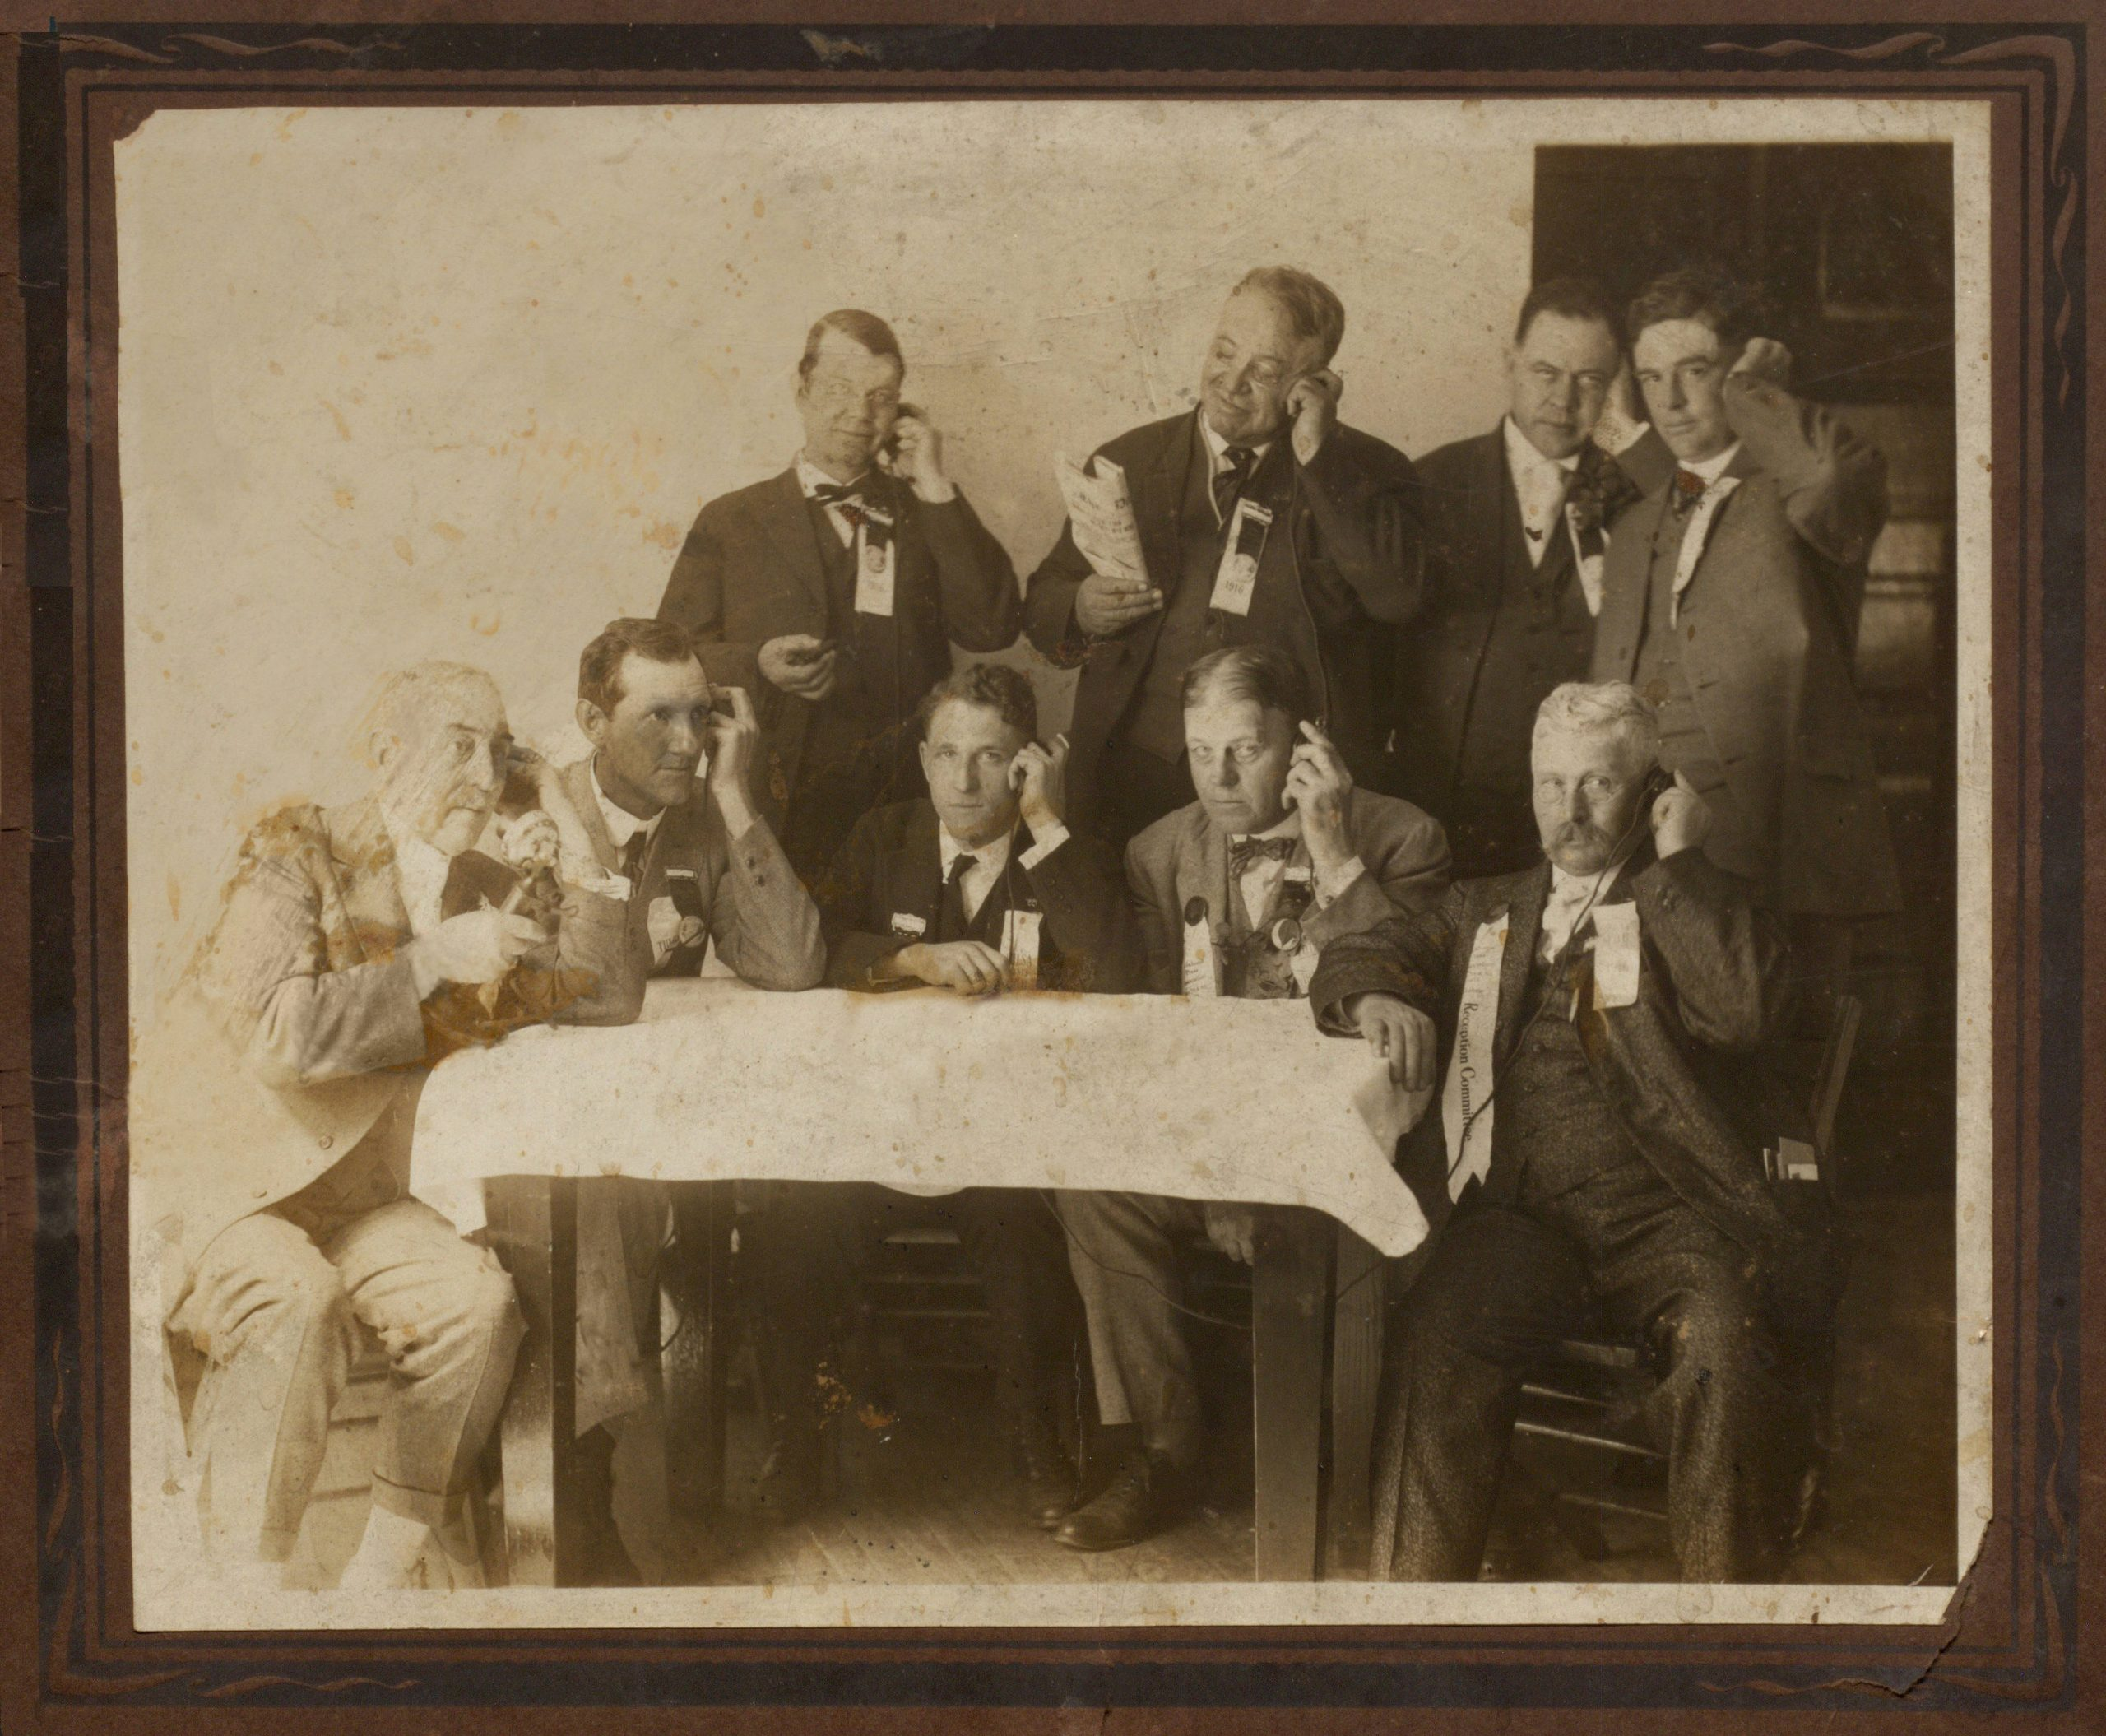 Photograph of the Oklahoma Press Association making the first long distance telephone call from Oklahoma to San Francisco, from Guthrie, Oklahoma, May 8, 1915